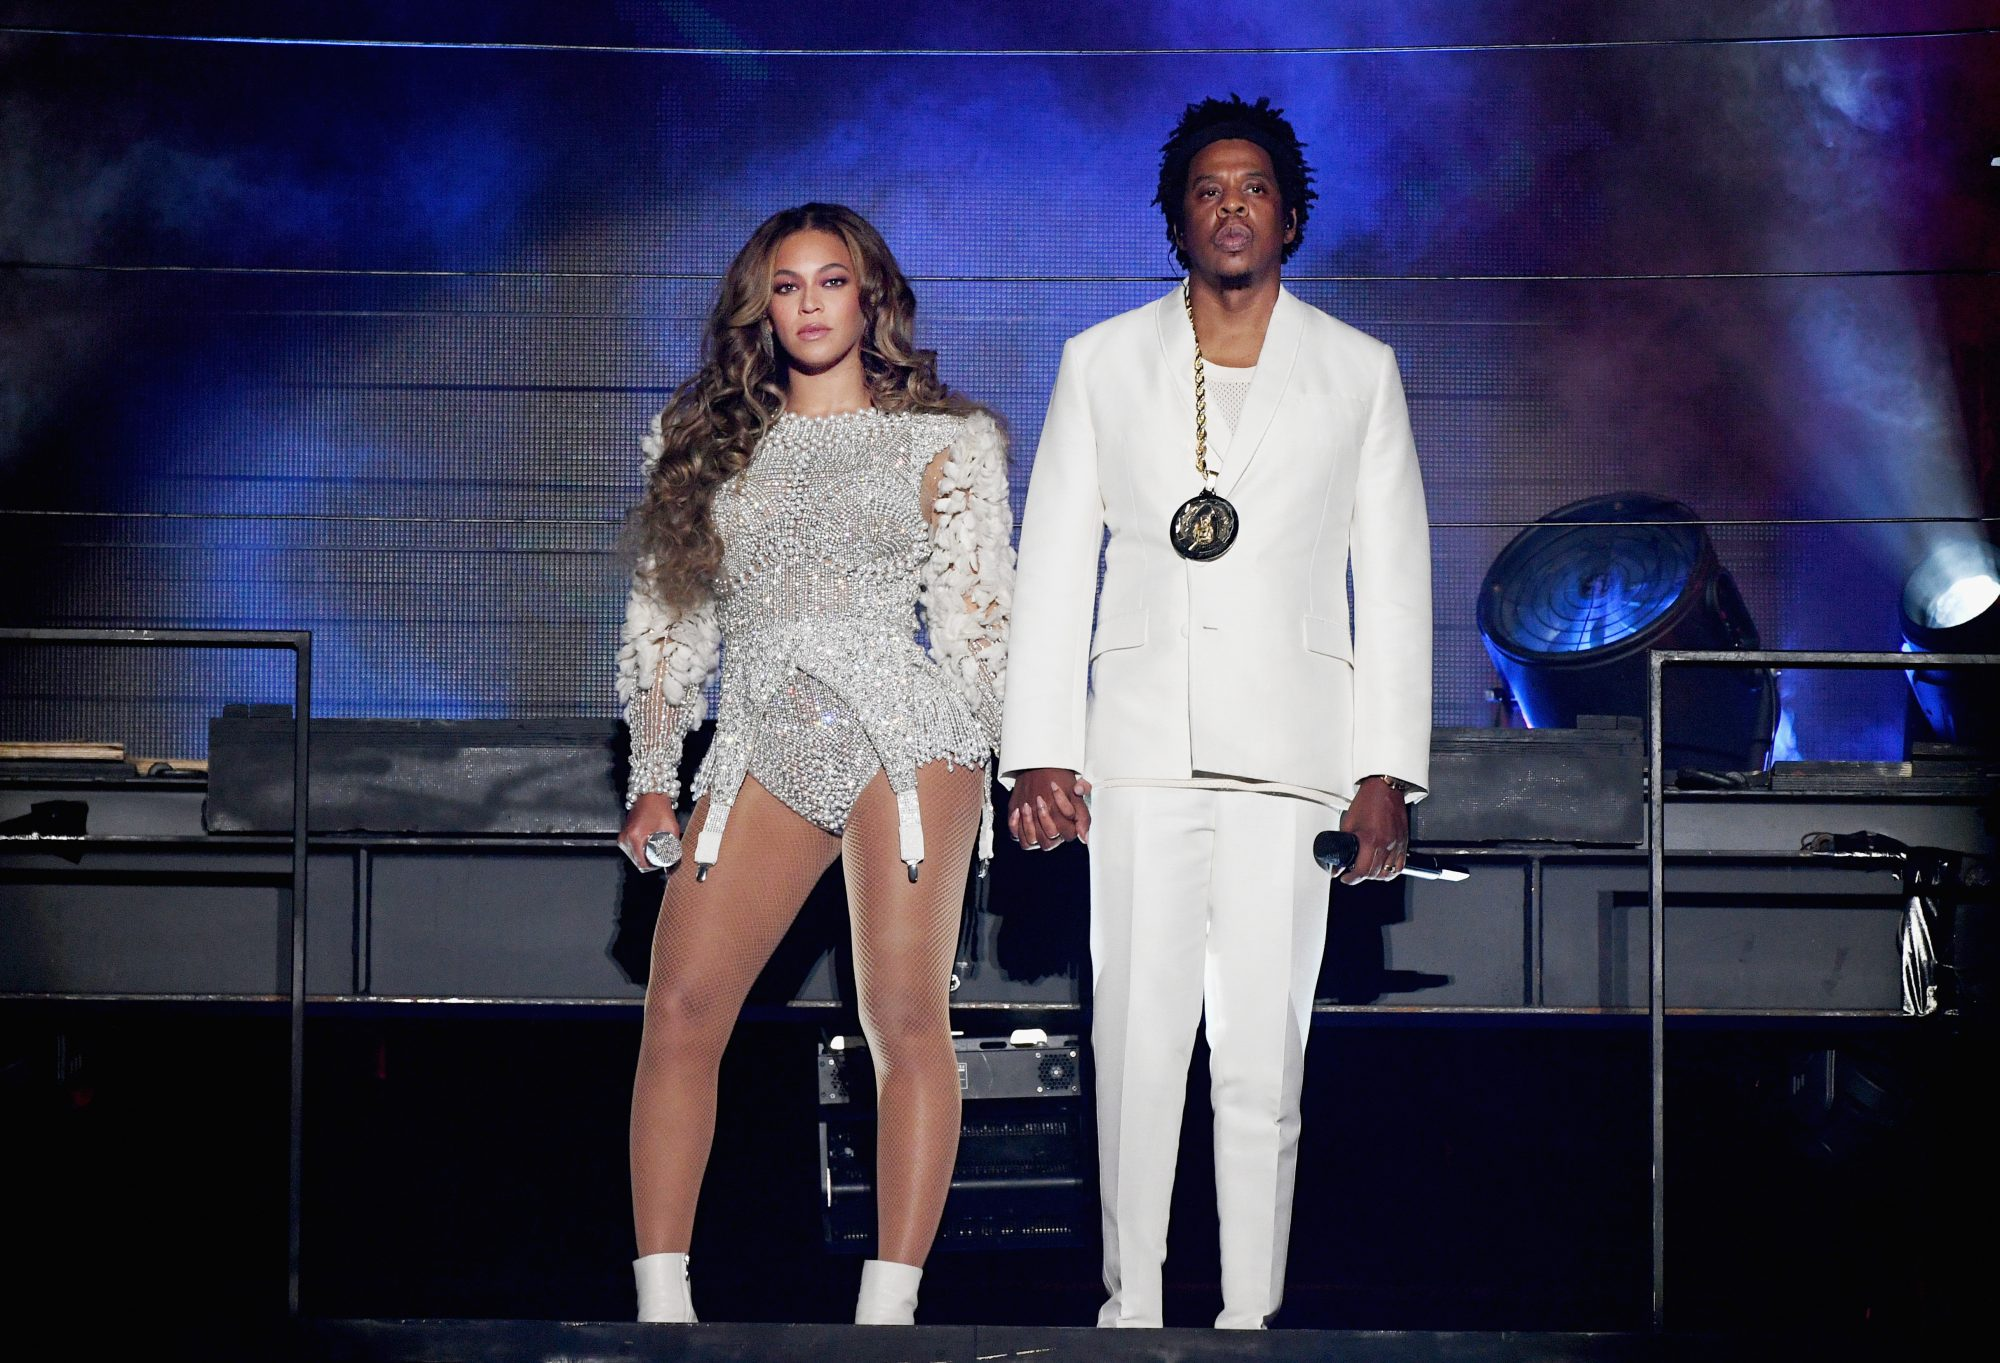 Beyonce and Jay-Z's Oscar Party Will Serve Gallons of Caviar